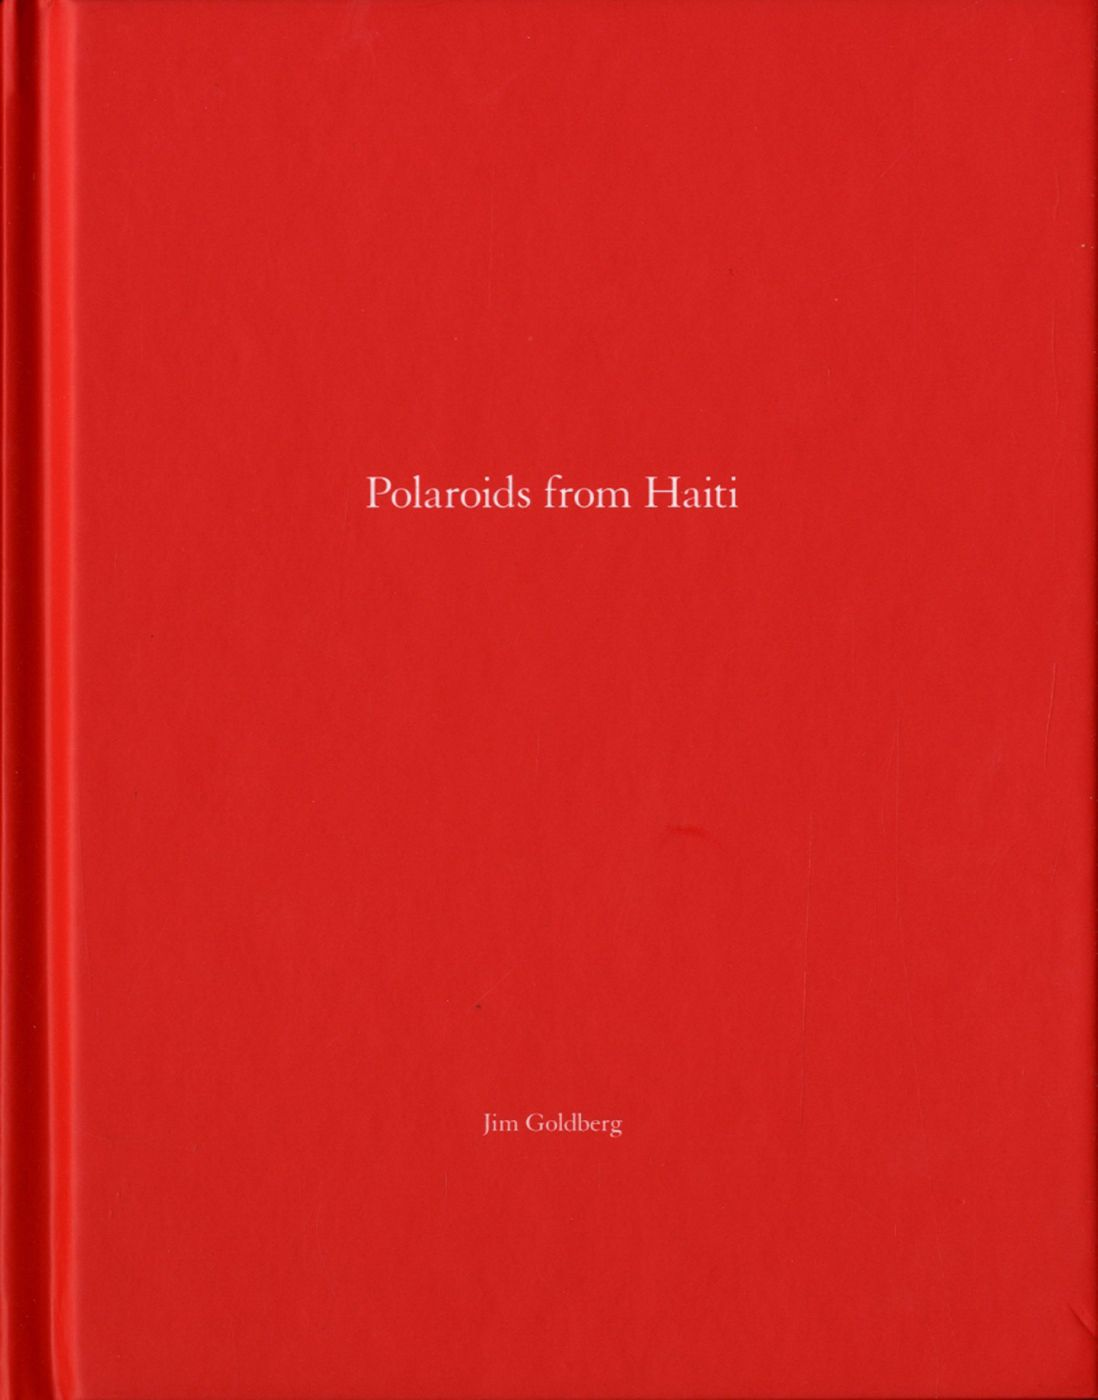 Jim Goldberg: Polaroids from Haiti (One Picture Book #84), Limited Edition (with Polaroid Print)